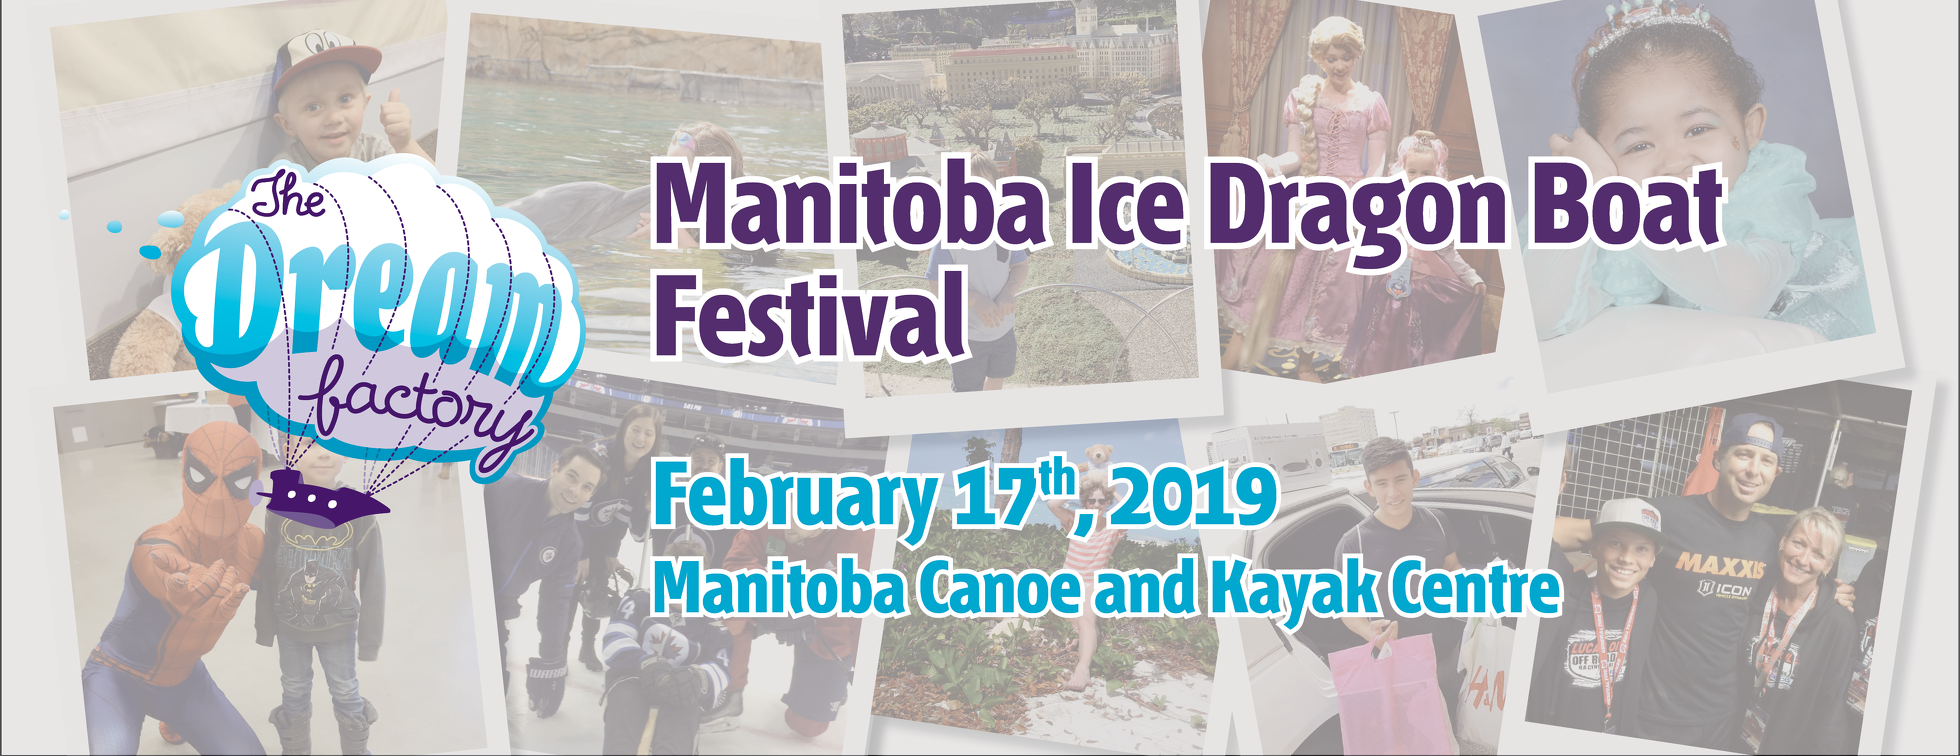 The Dream Factory Manitoba Ice Dragon Boat Festival